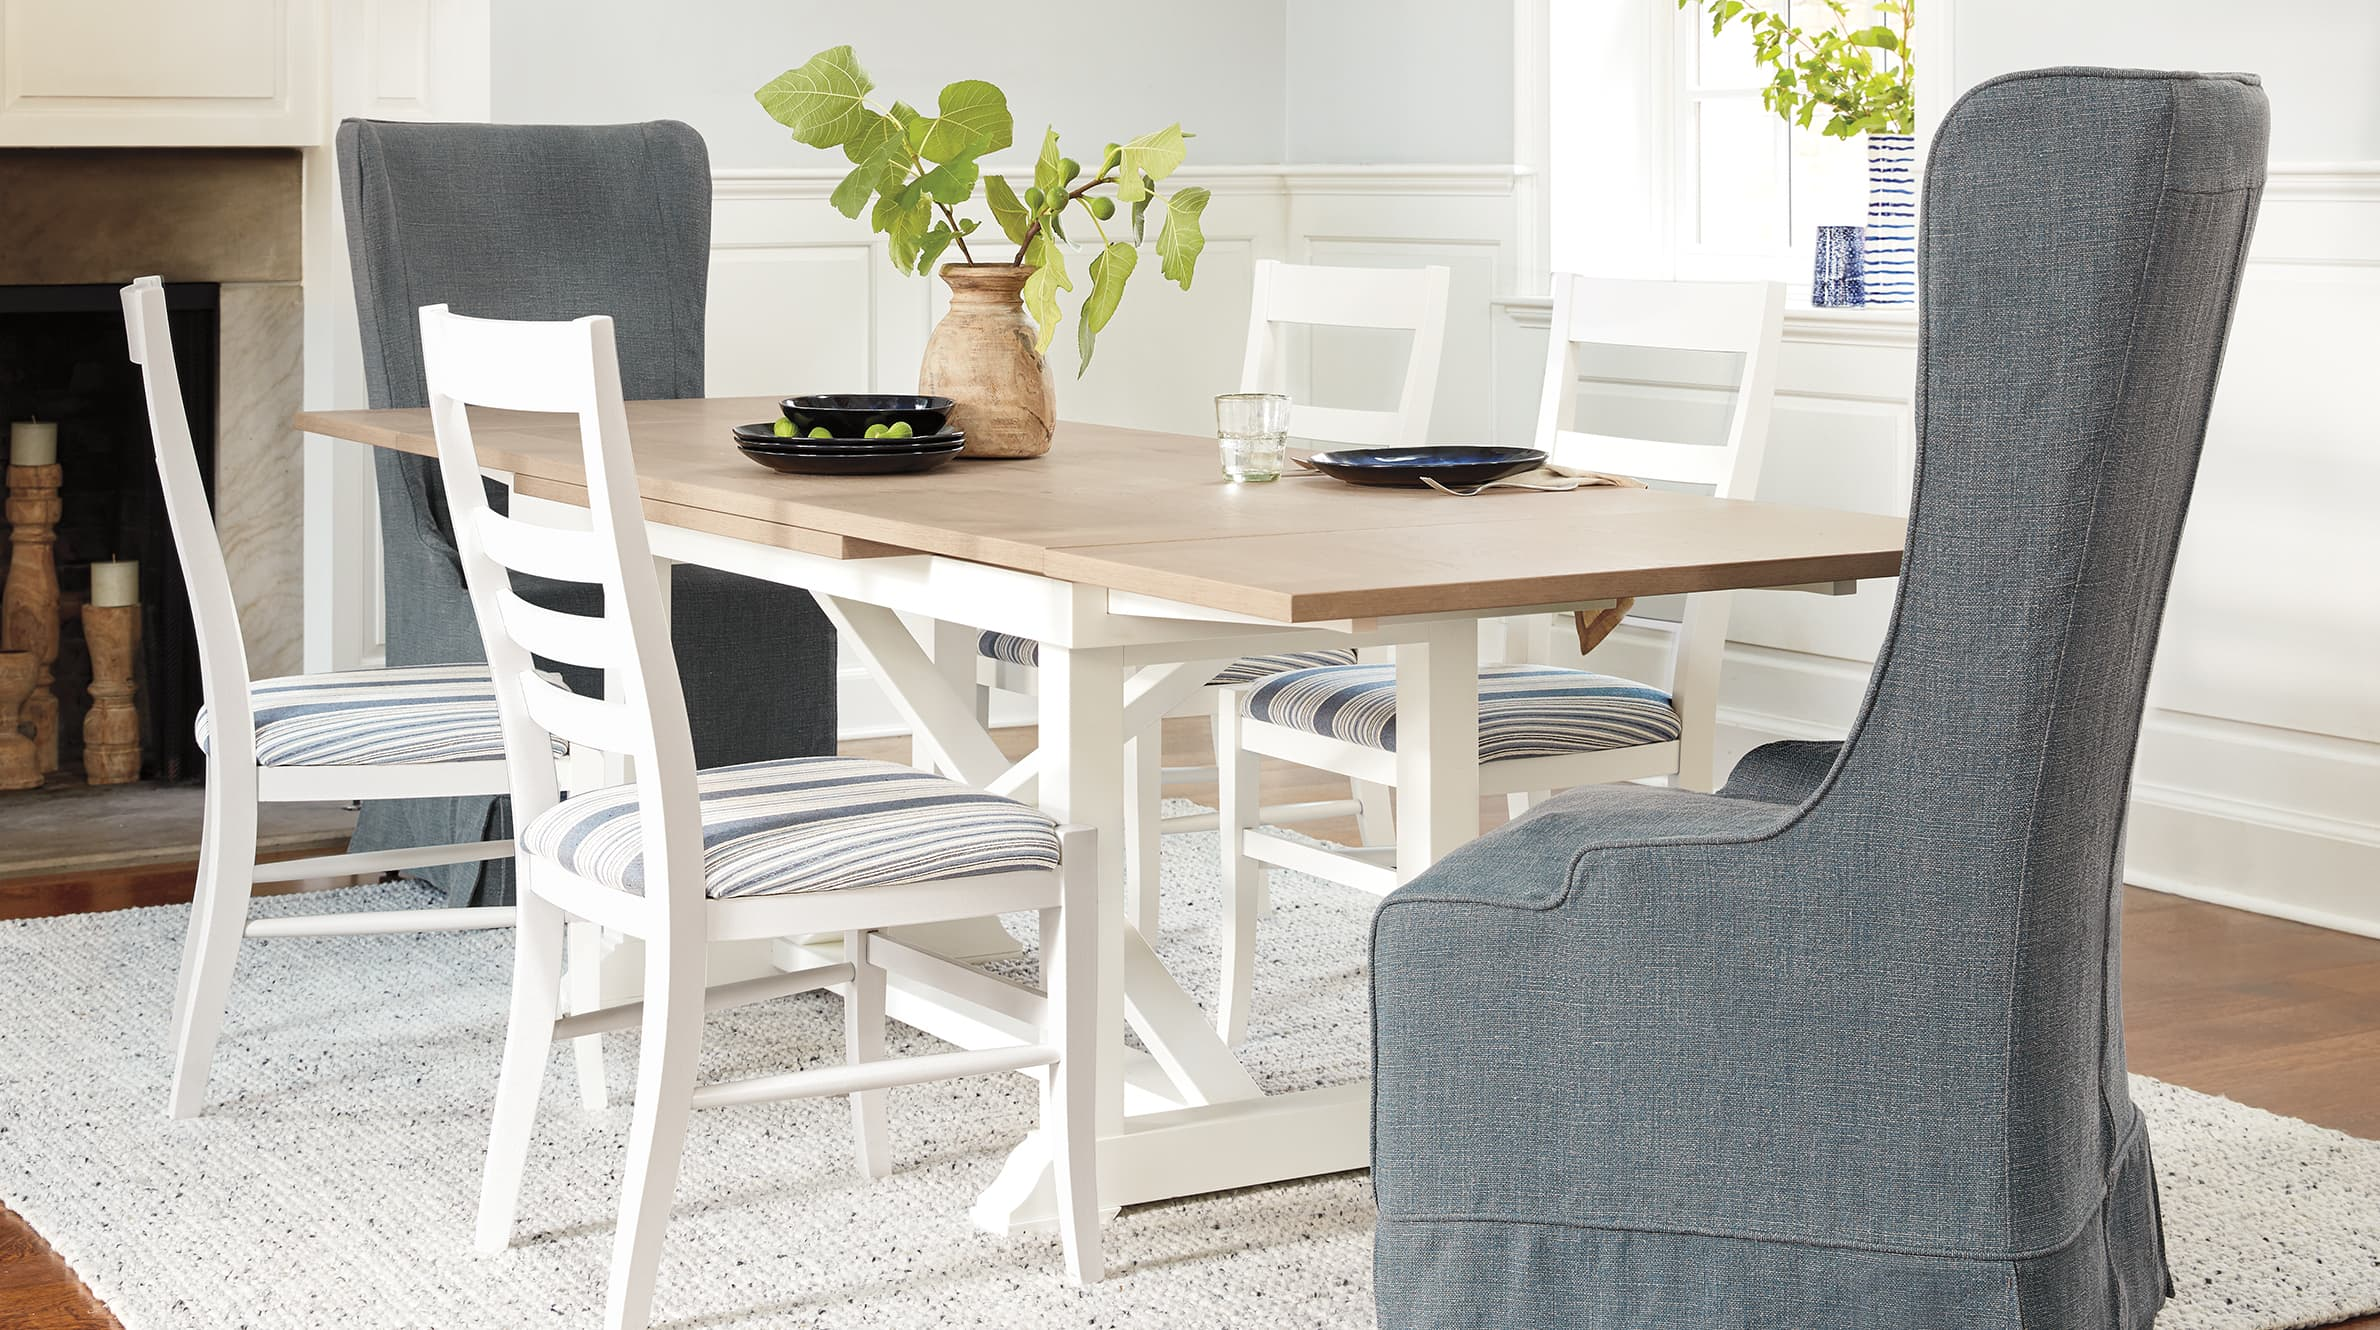 dining and kitchen chairs